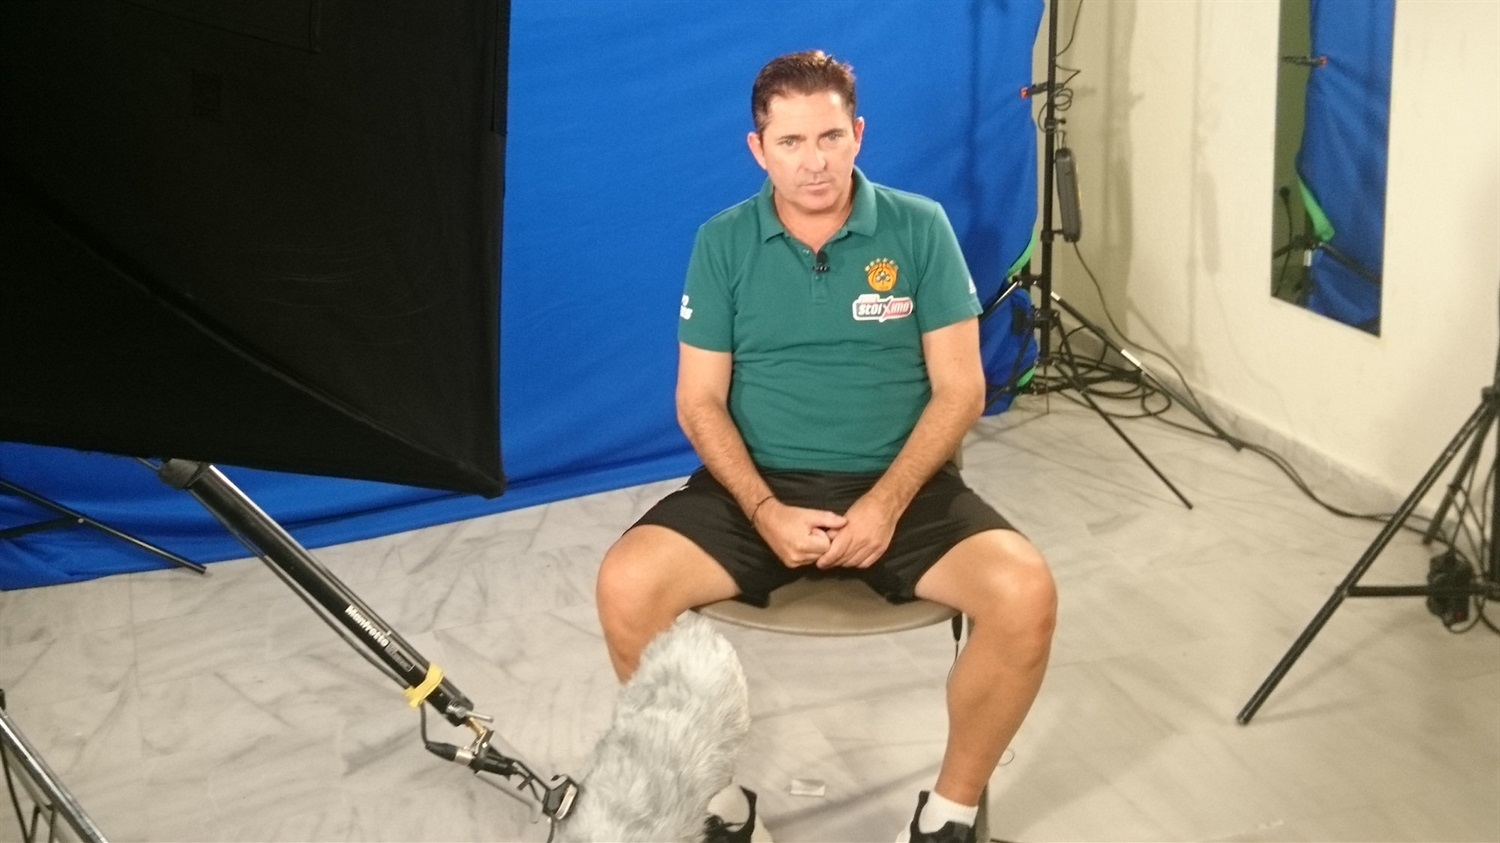 Xavi Pascual - Panathinaikos OPAP Athens Media Day 2018 - EB18